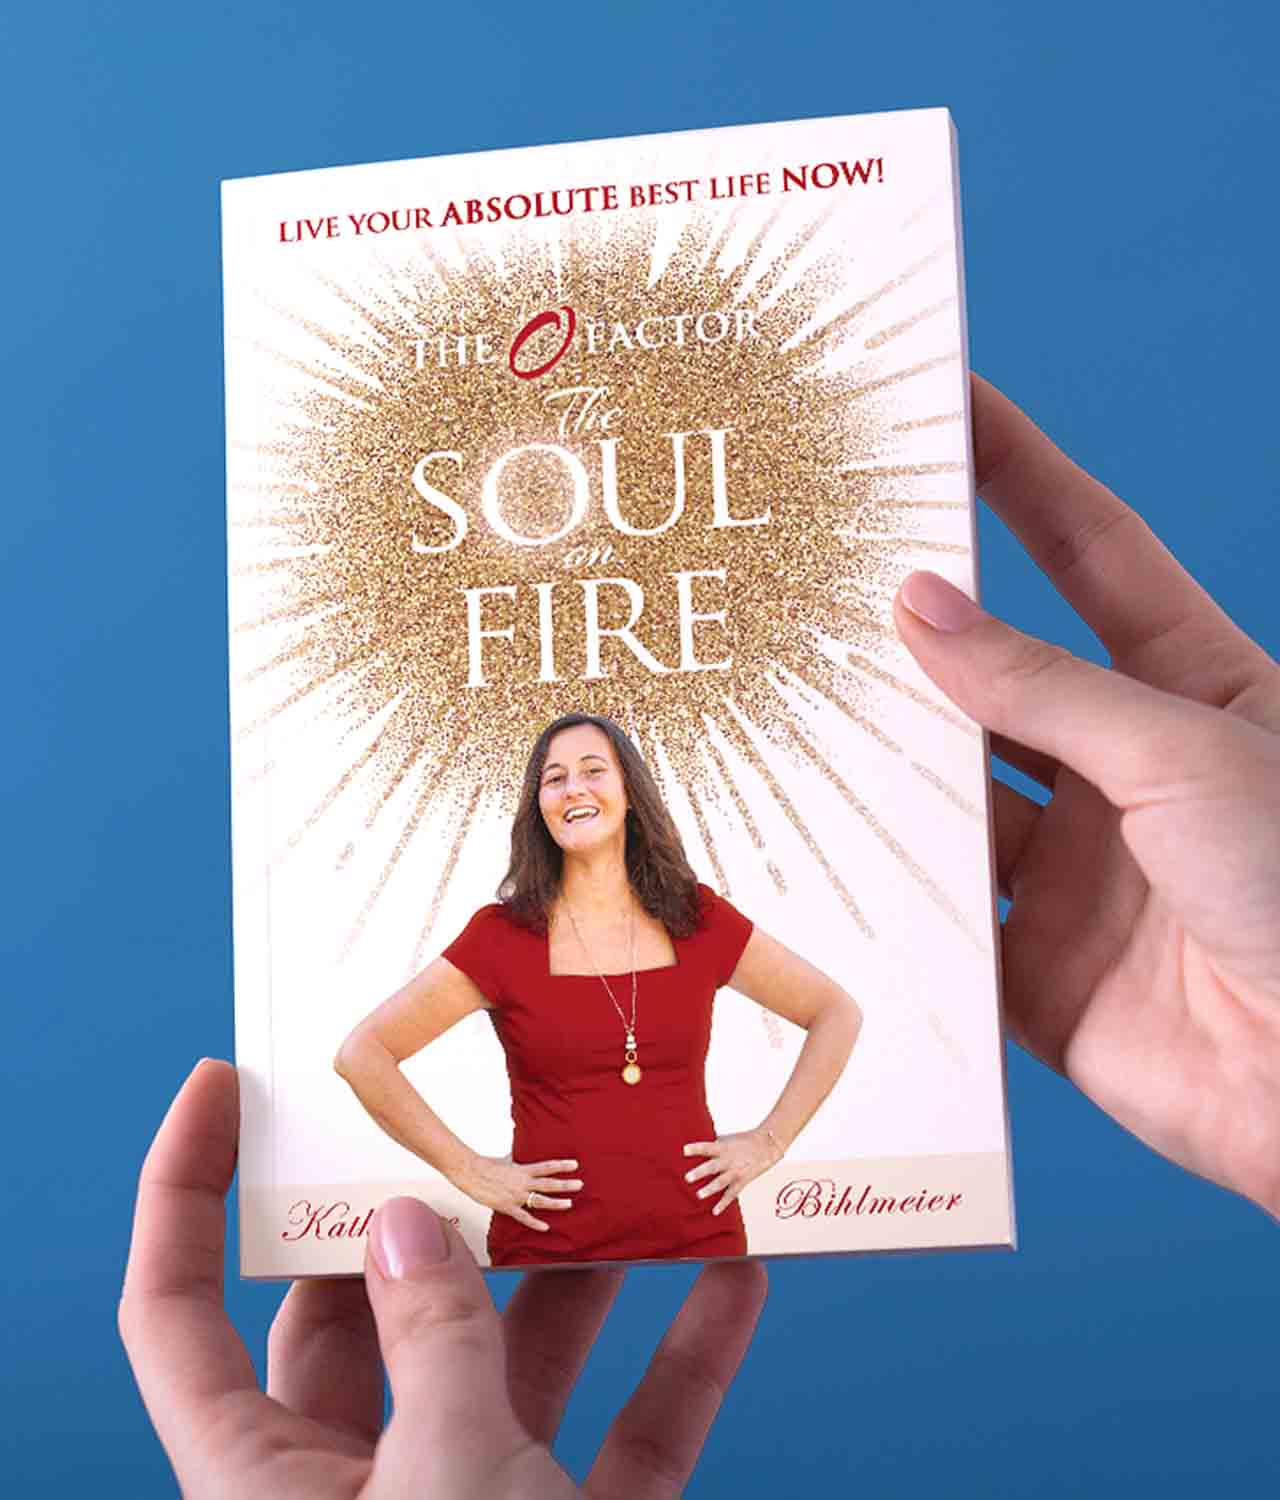 The-Soul-on-Fire-O-Factor-Coaching-Katherine-Bihlmeier